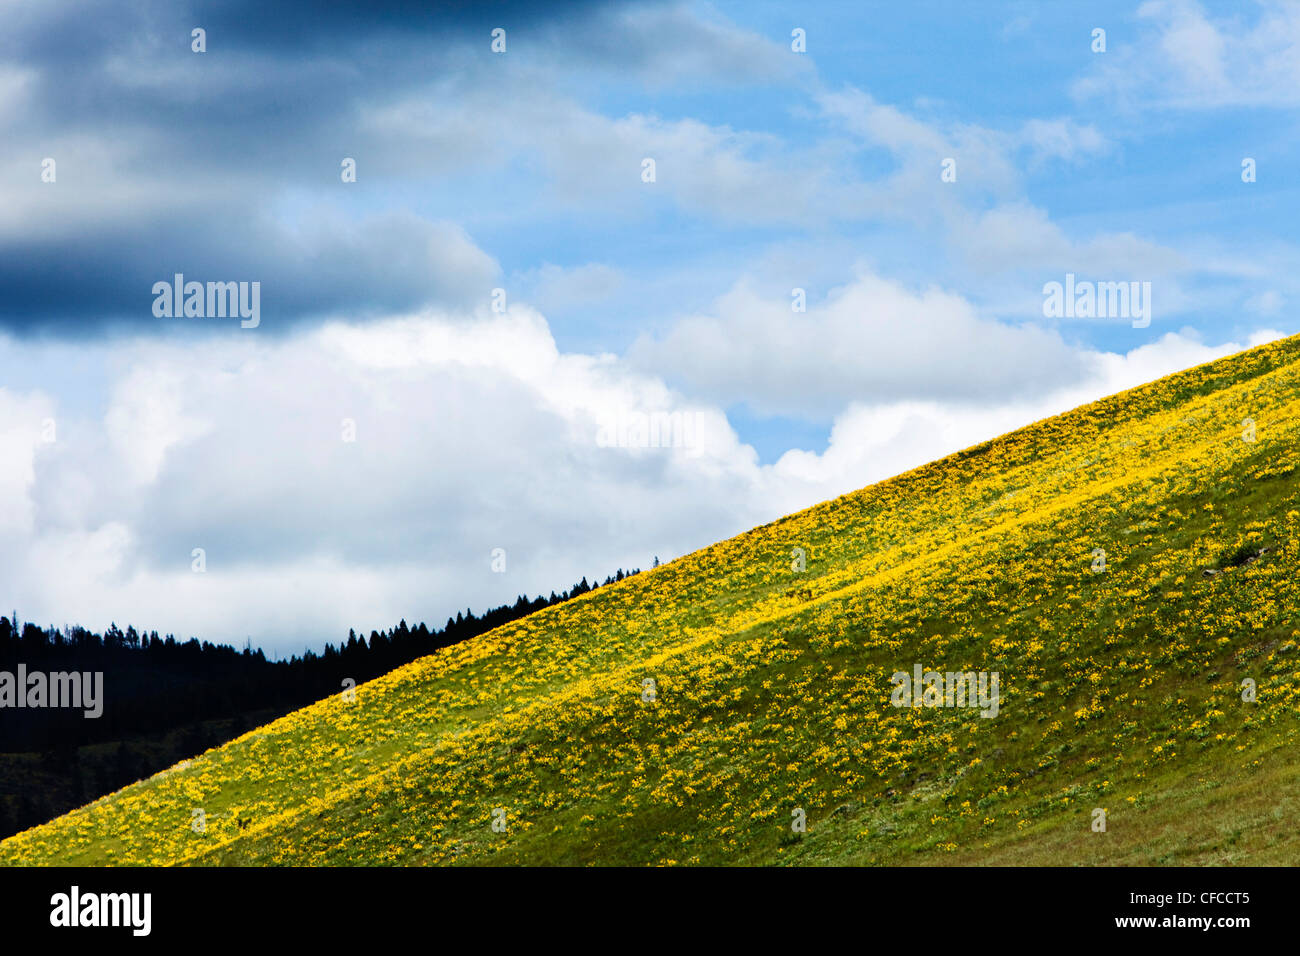 A hillside of wild flowers blooming under stormy skies in Montana. - Stock Image